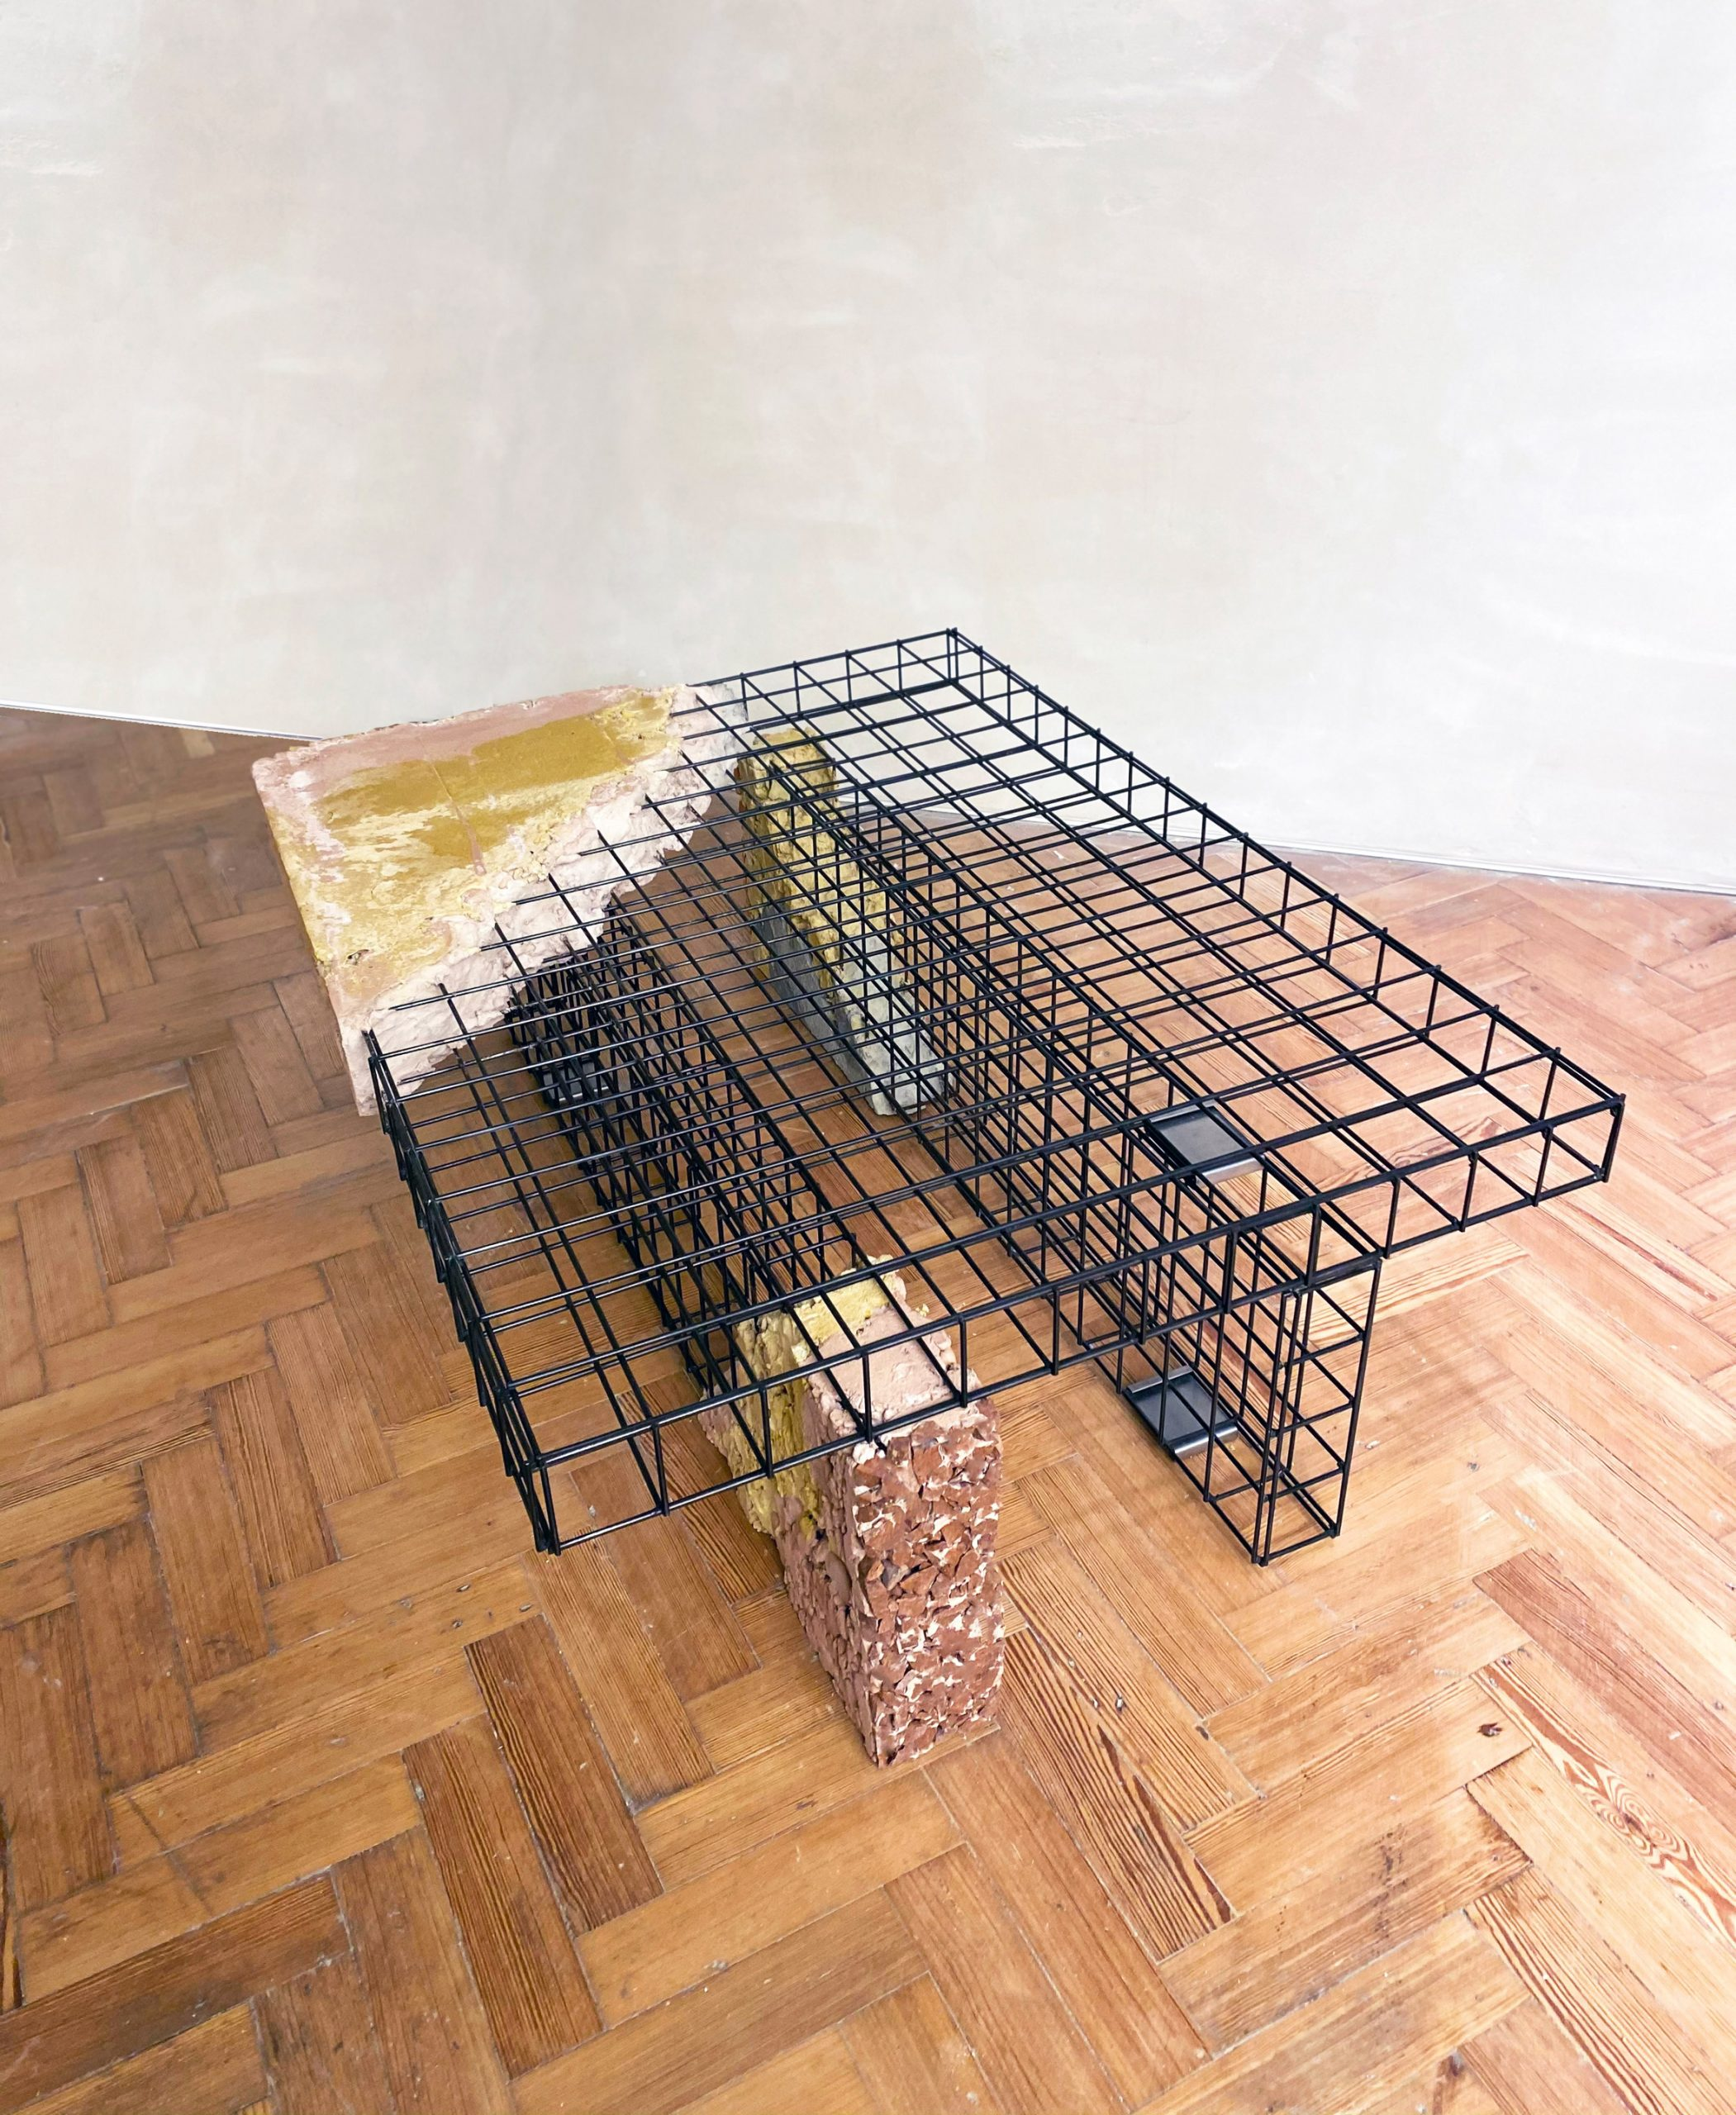 Table built using the modular Appropriating the Grid furniture collection by Irene Roca Moracia